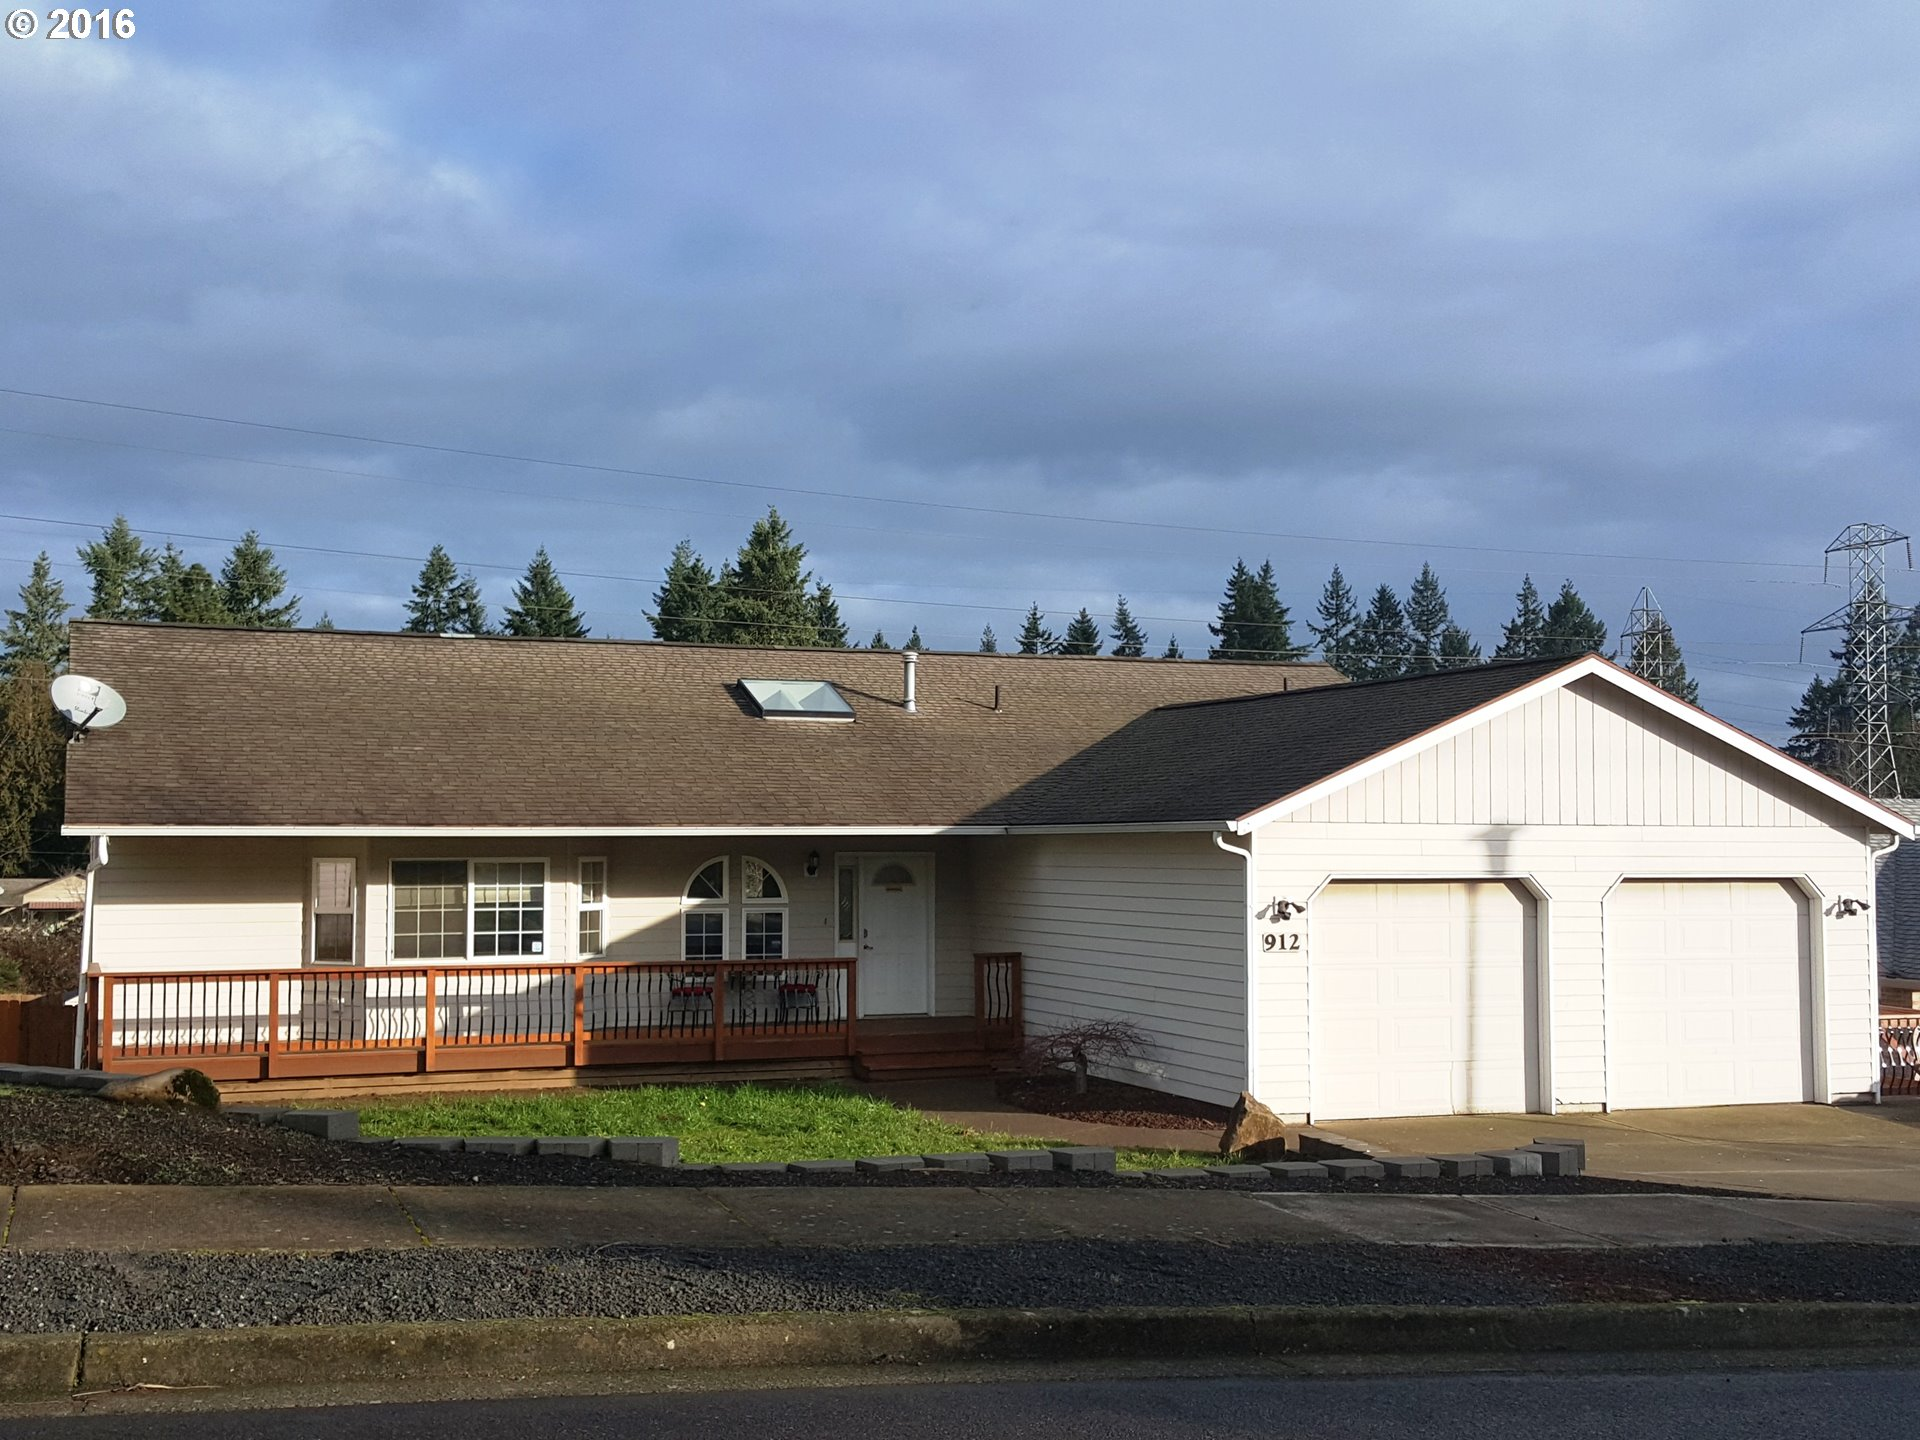 912 NW 57TH ST, Vancouver, WA 98663